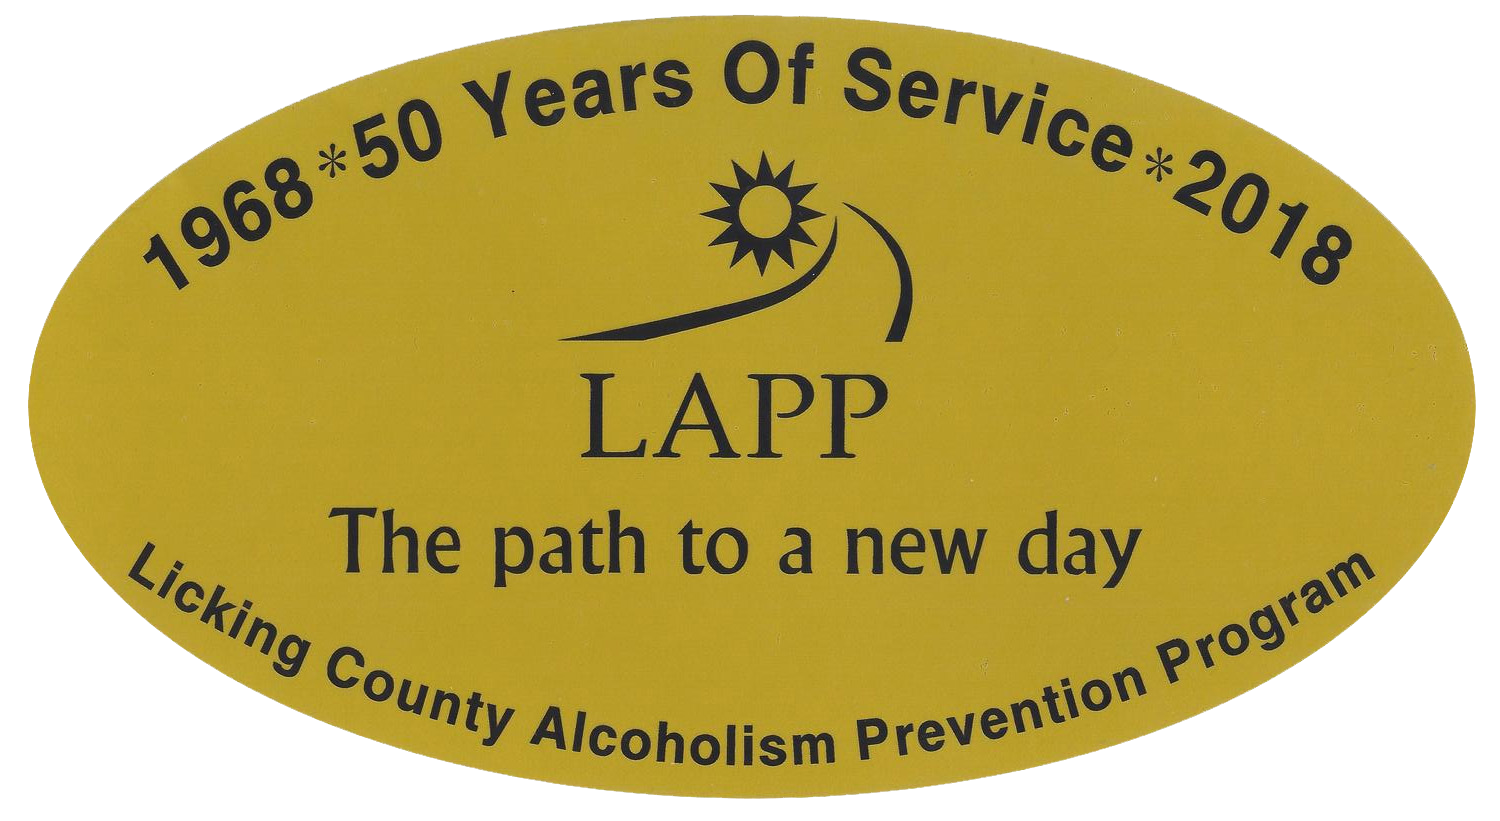 LAPP for 50 years